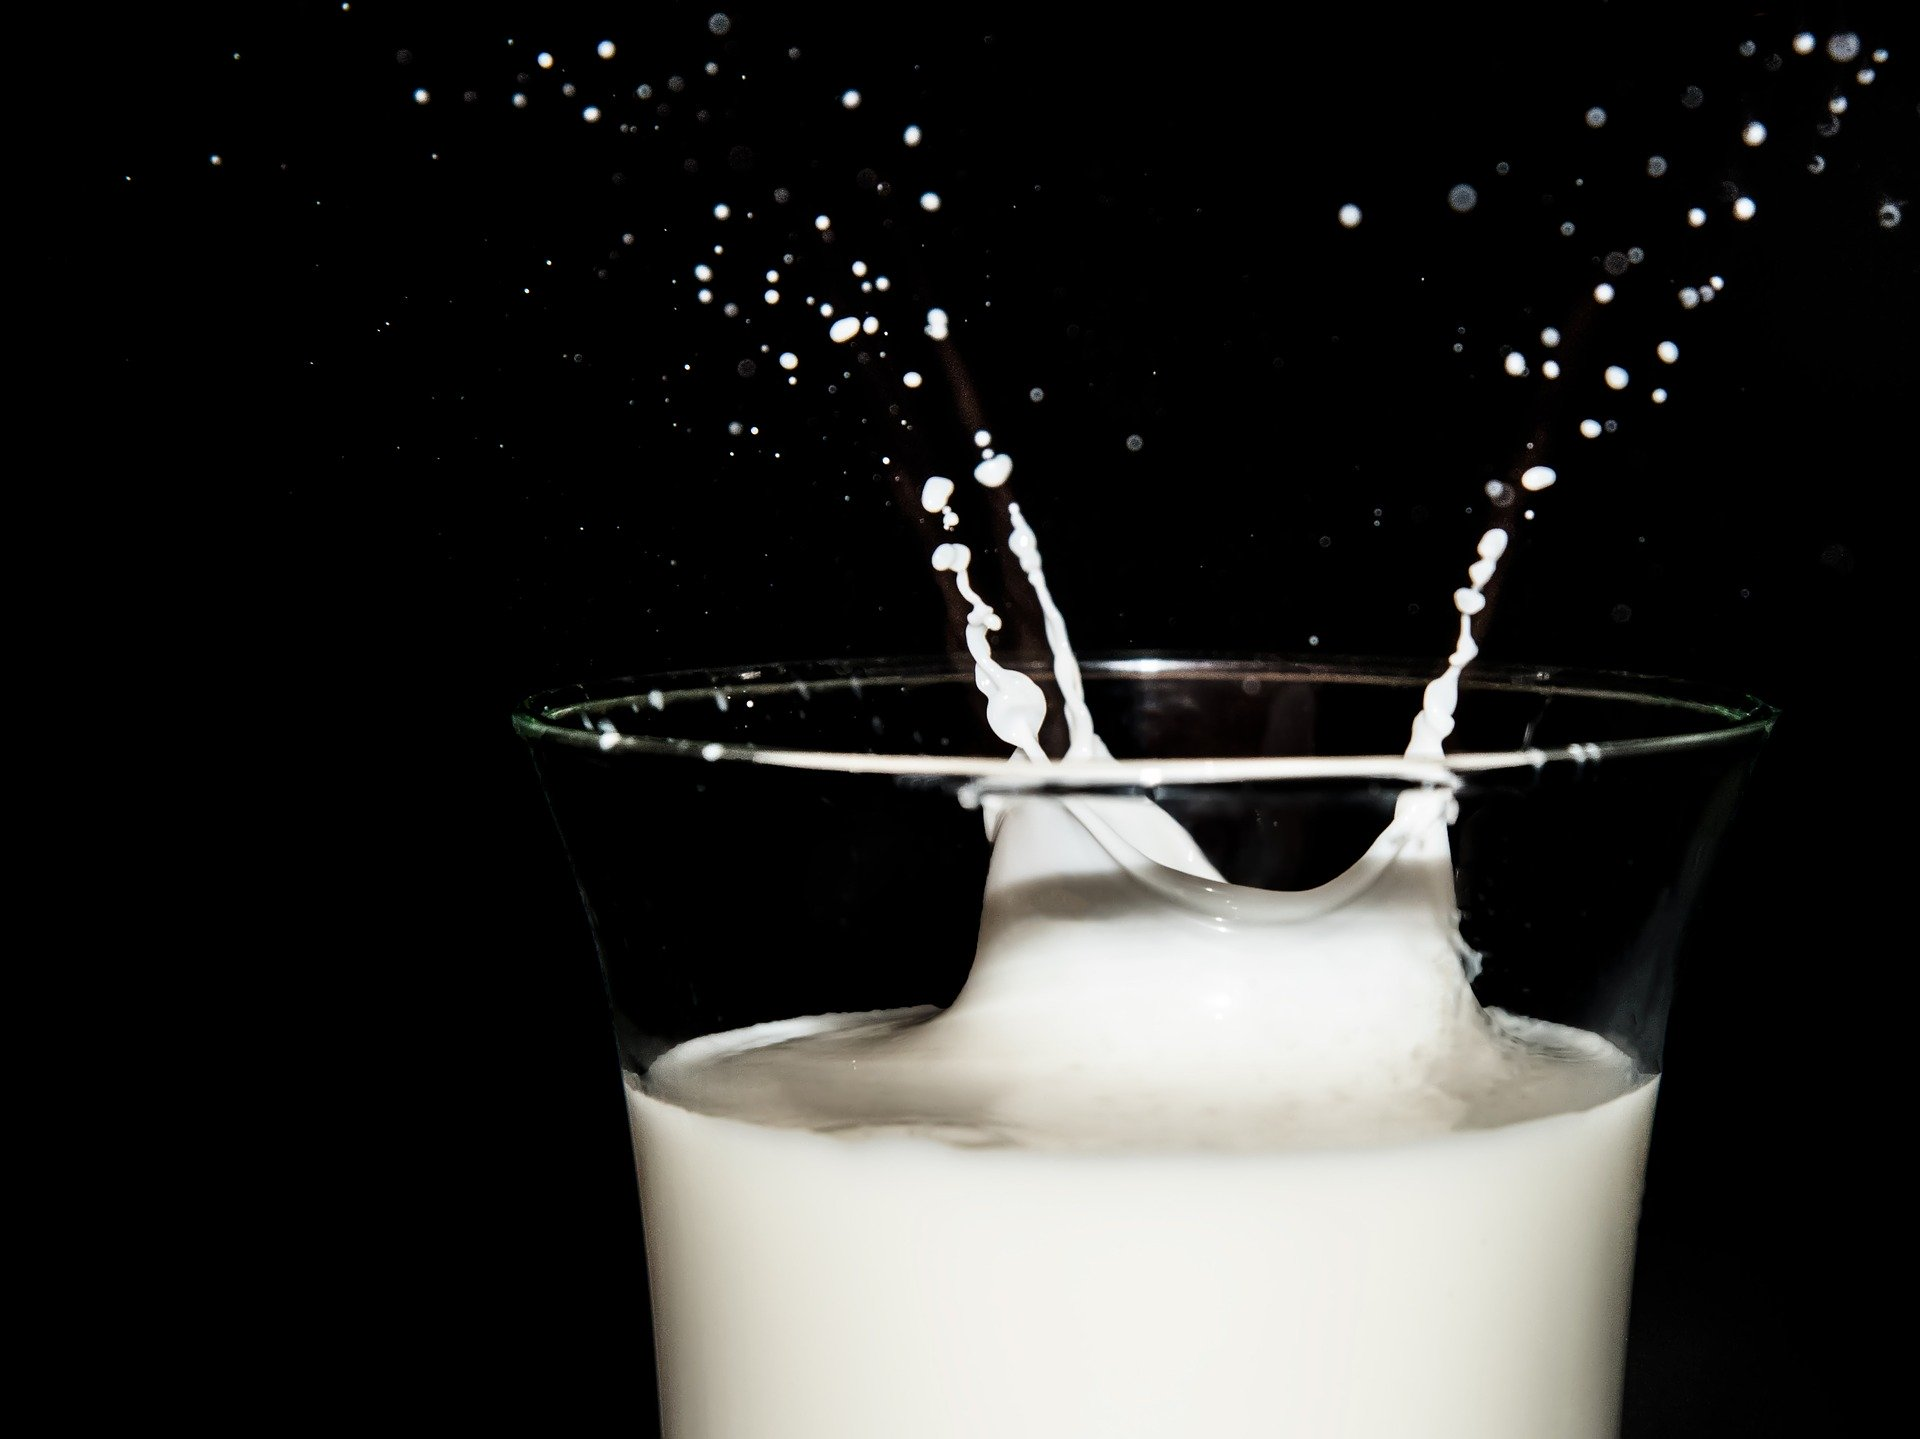 7 Reasons Why Drinking Milk Is Dangerous For You